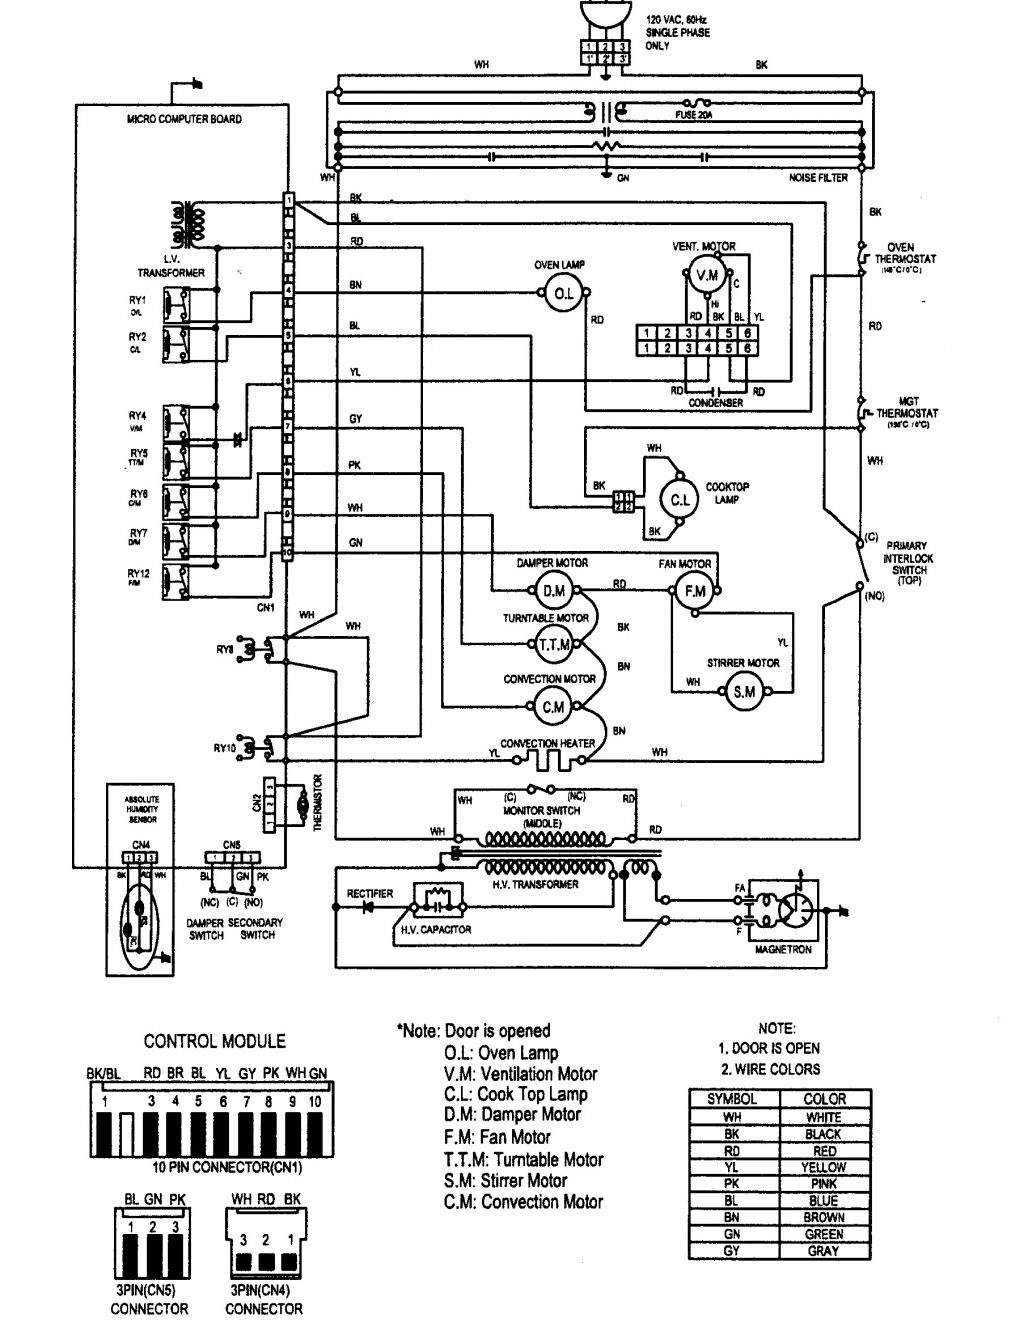 kenmore refrigerator wiring diagram Download-Wiring Diagram Formore Elite Refrigerator Copy Pdf Ice Maker Sears 9-m